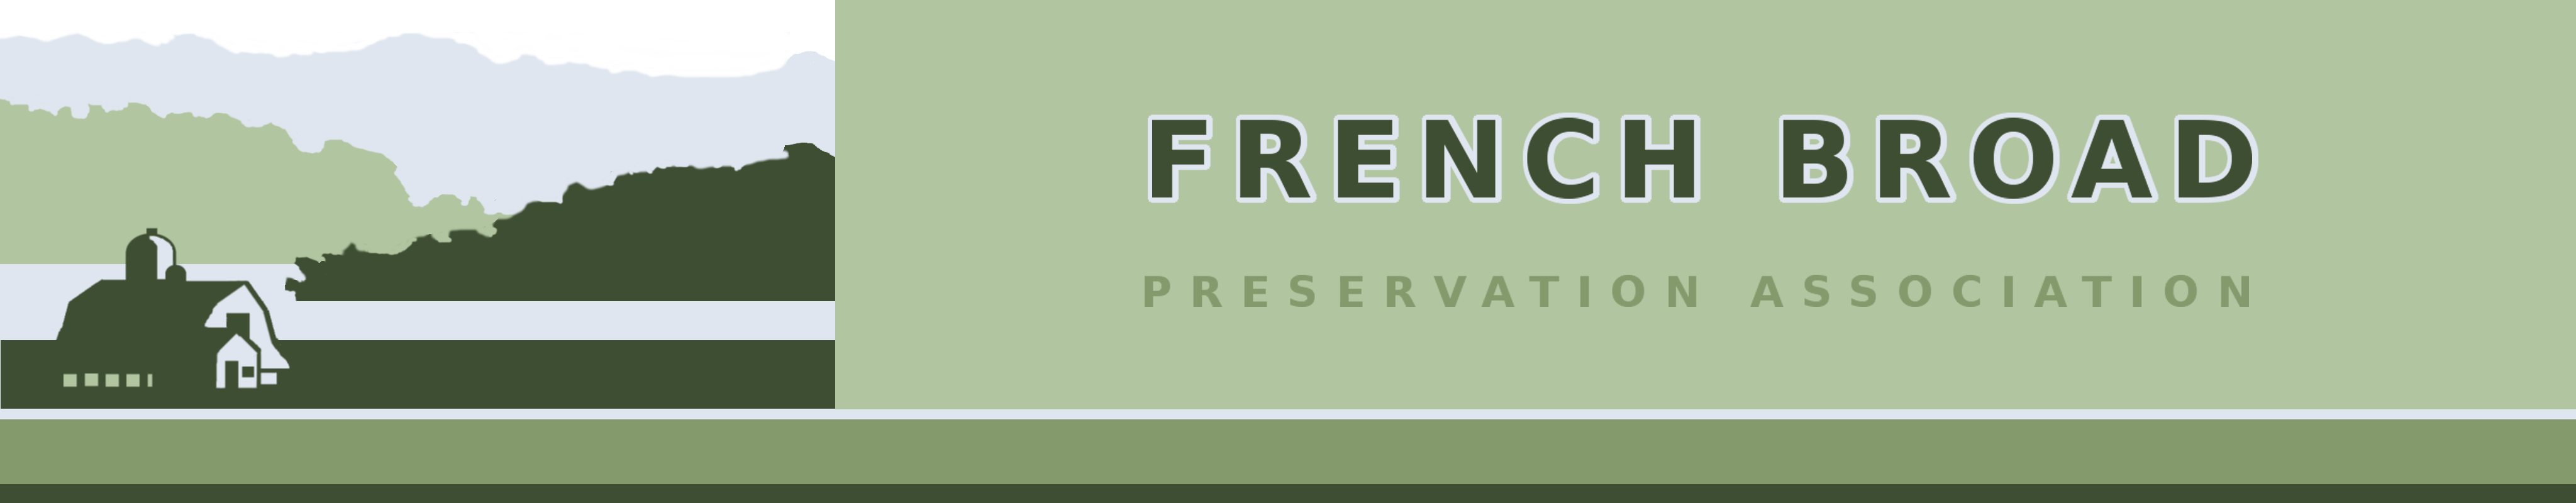 French Broad Preservation Association